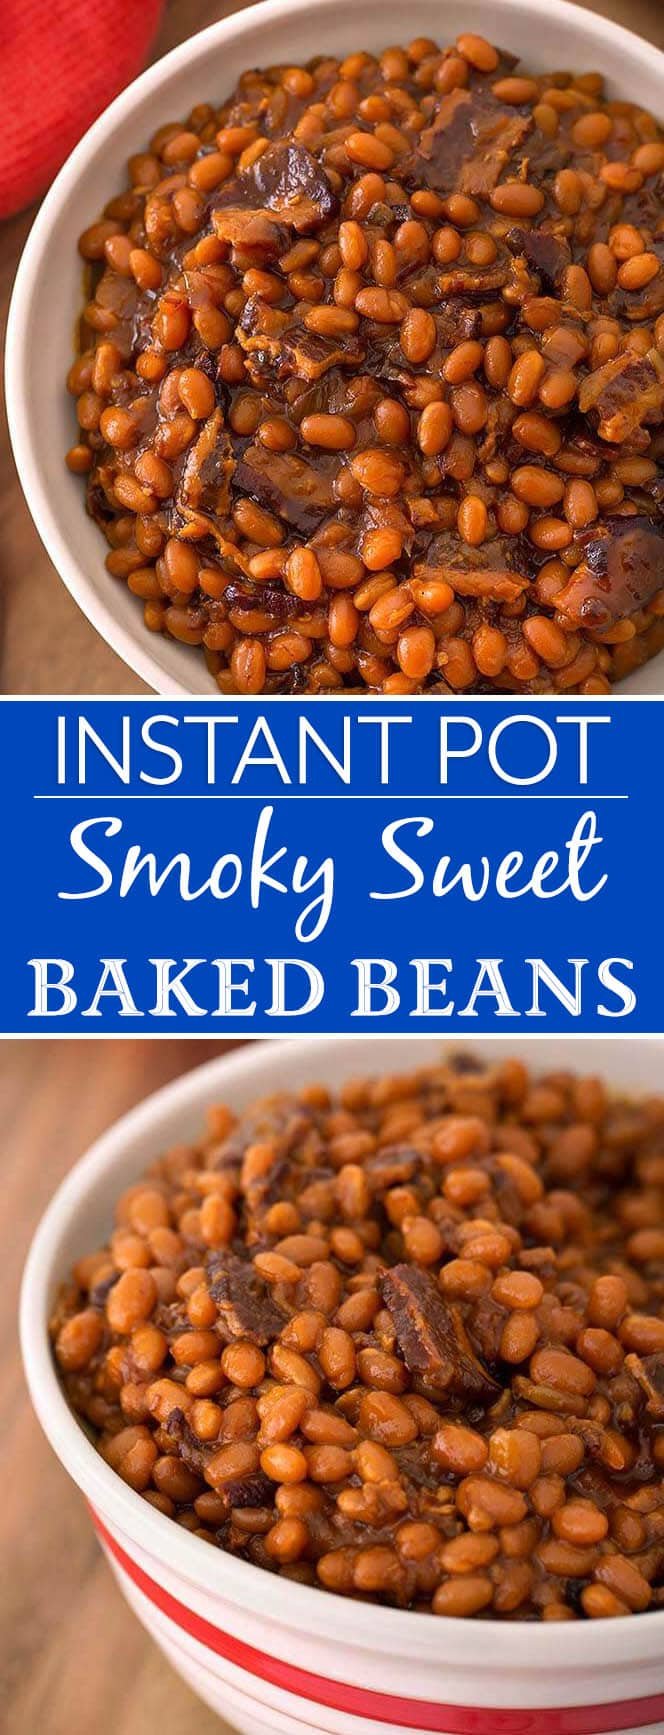 Instant Pot Smoky Sweet Baked Beans are rich and delicious. Made from soaked navy beans in your electric pressure cooker. simplyhappyfoodie.com #instantpotbakedbeans #instantpotbeans #instantpotbakedbeansrecipe #pressurecookerbakedbeans